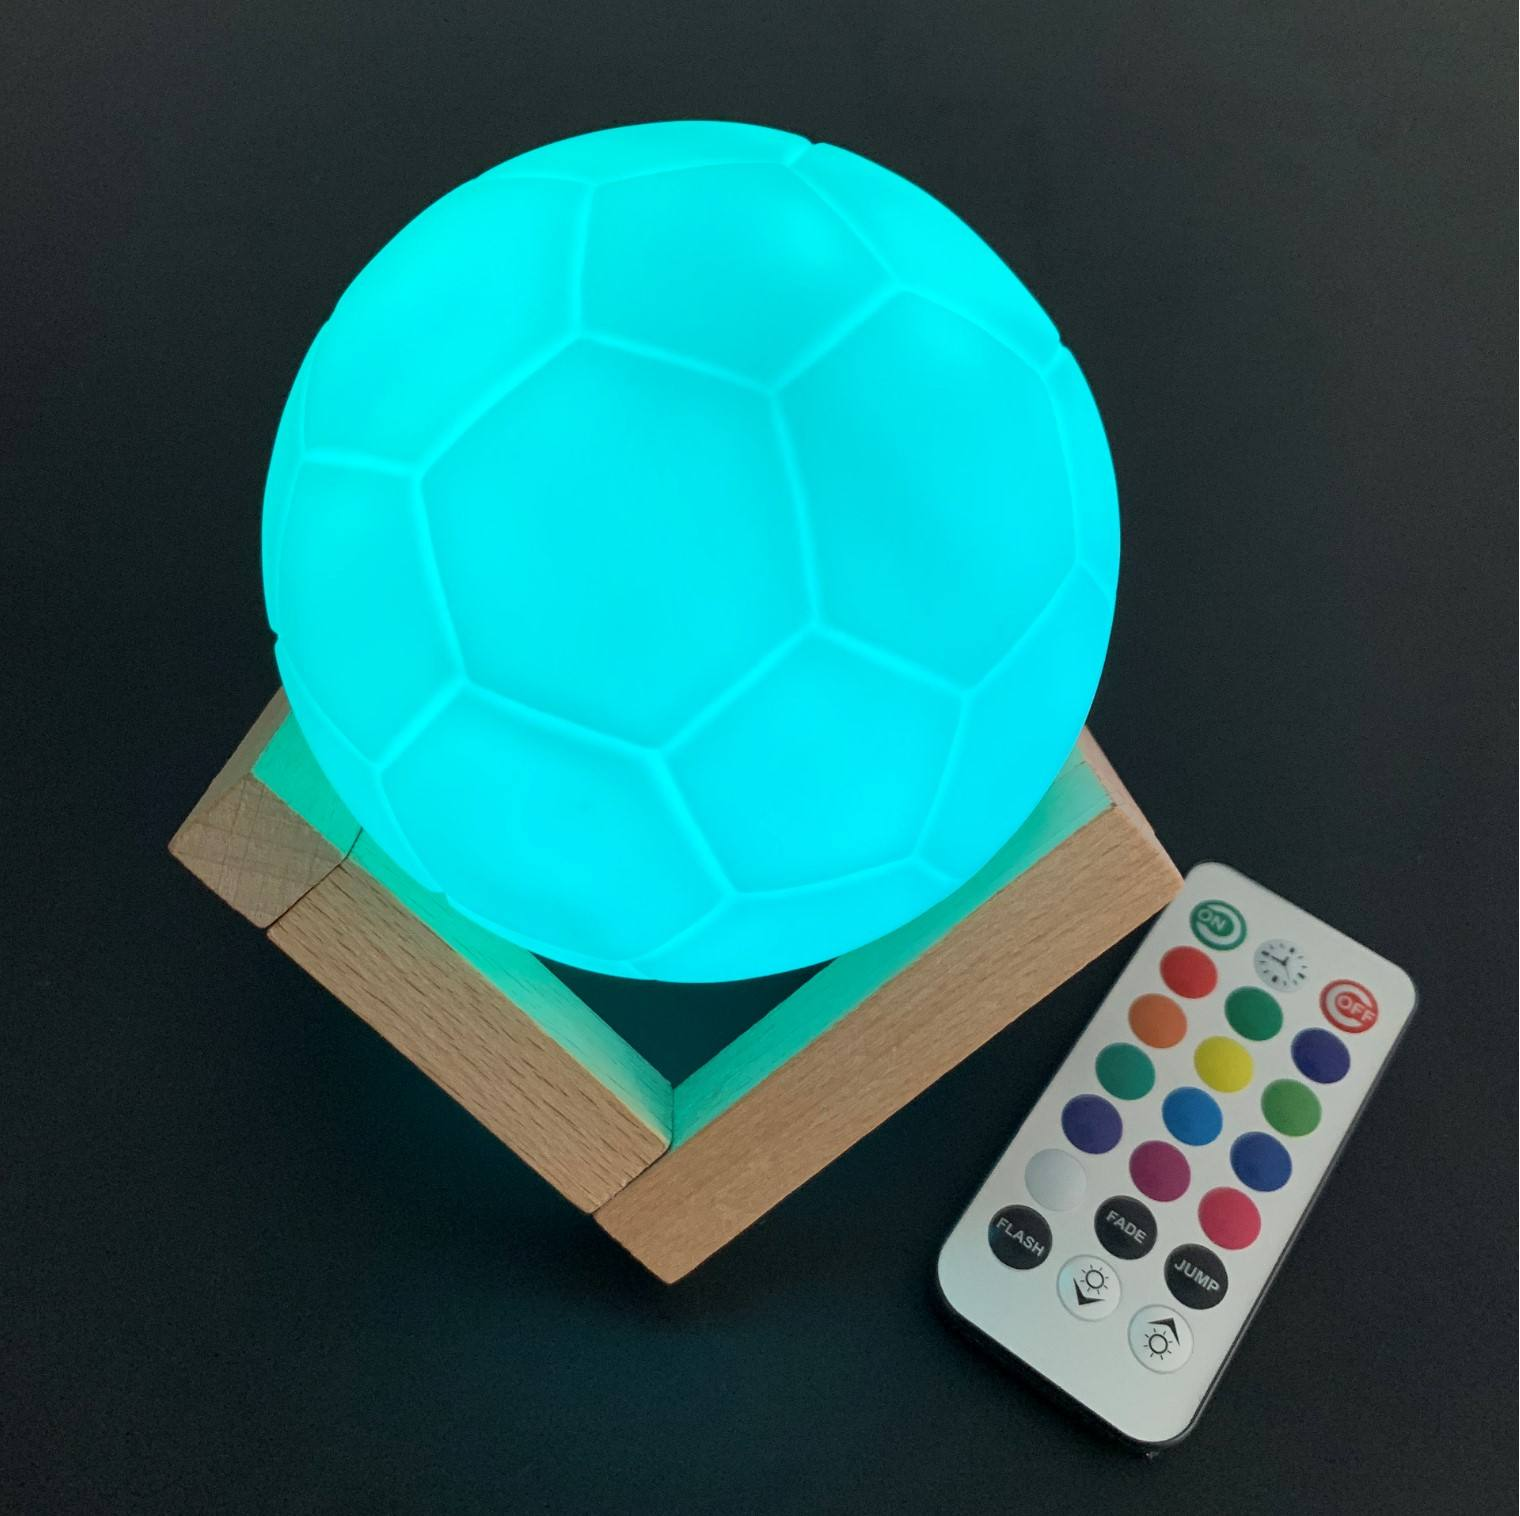 New Product Ideas 2020 Swimming pool led soccer ball lighting waterproof football Gift for Christmas